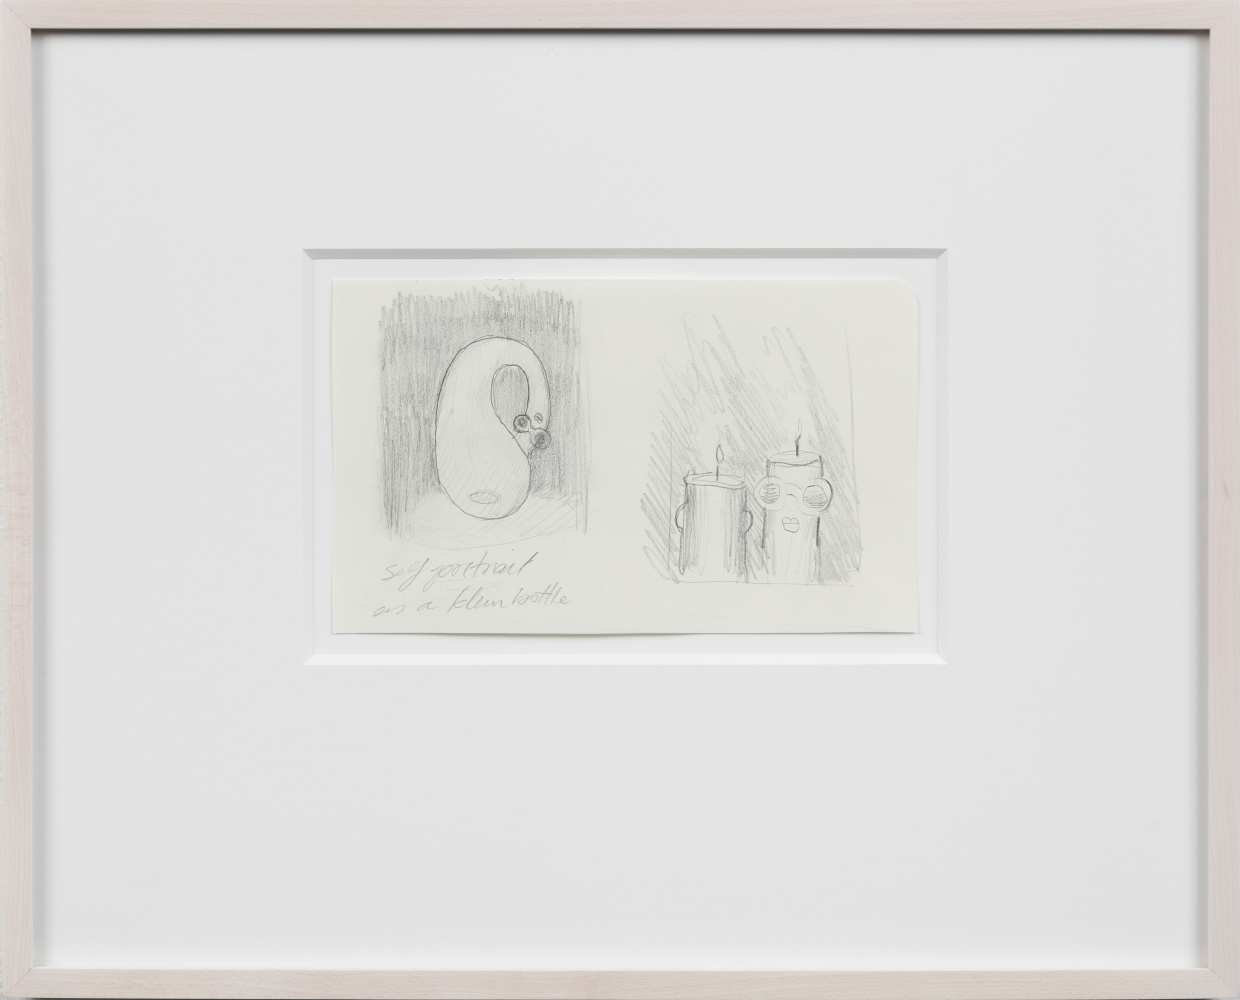 Emily Mae Smith Klein Bottle and Candles drawings 2017